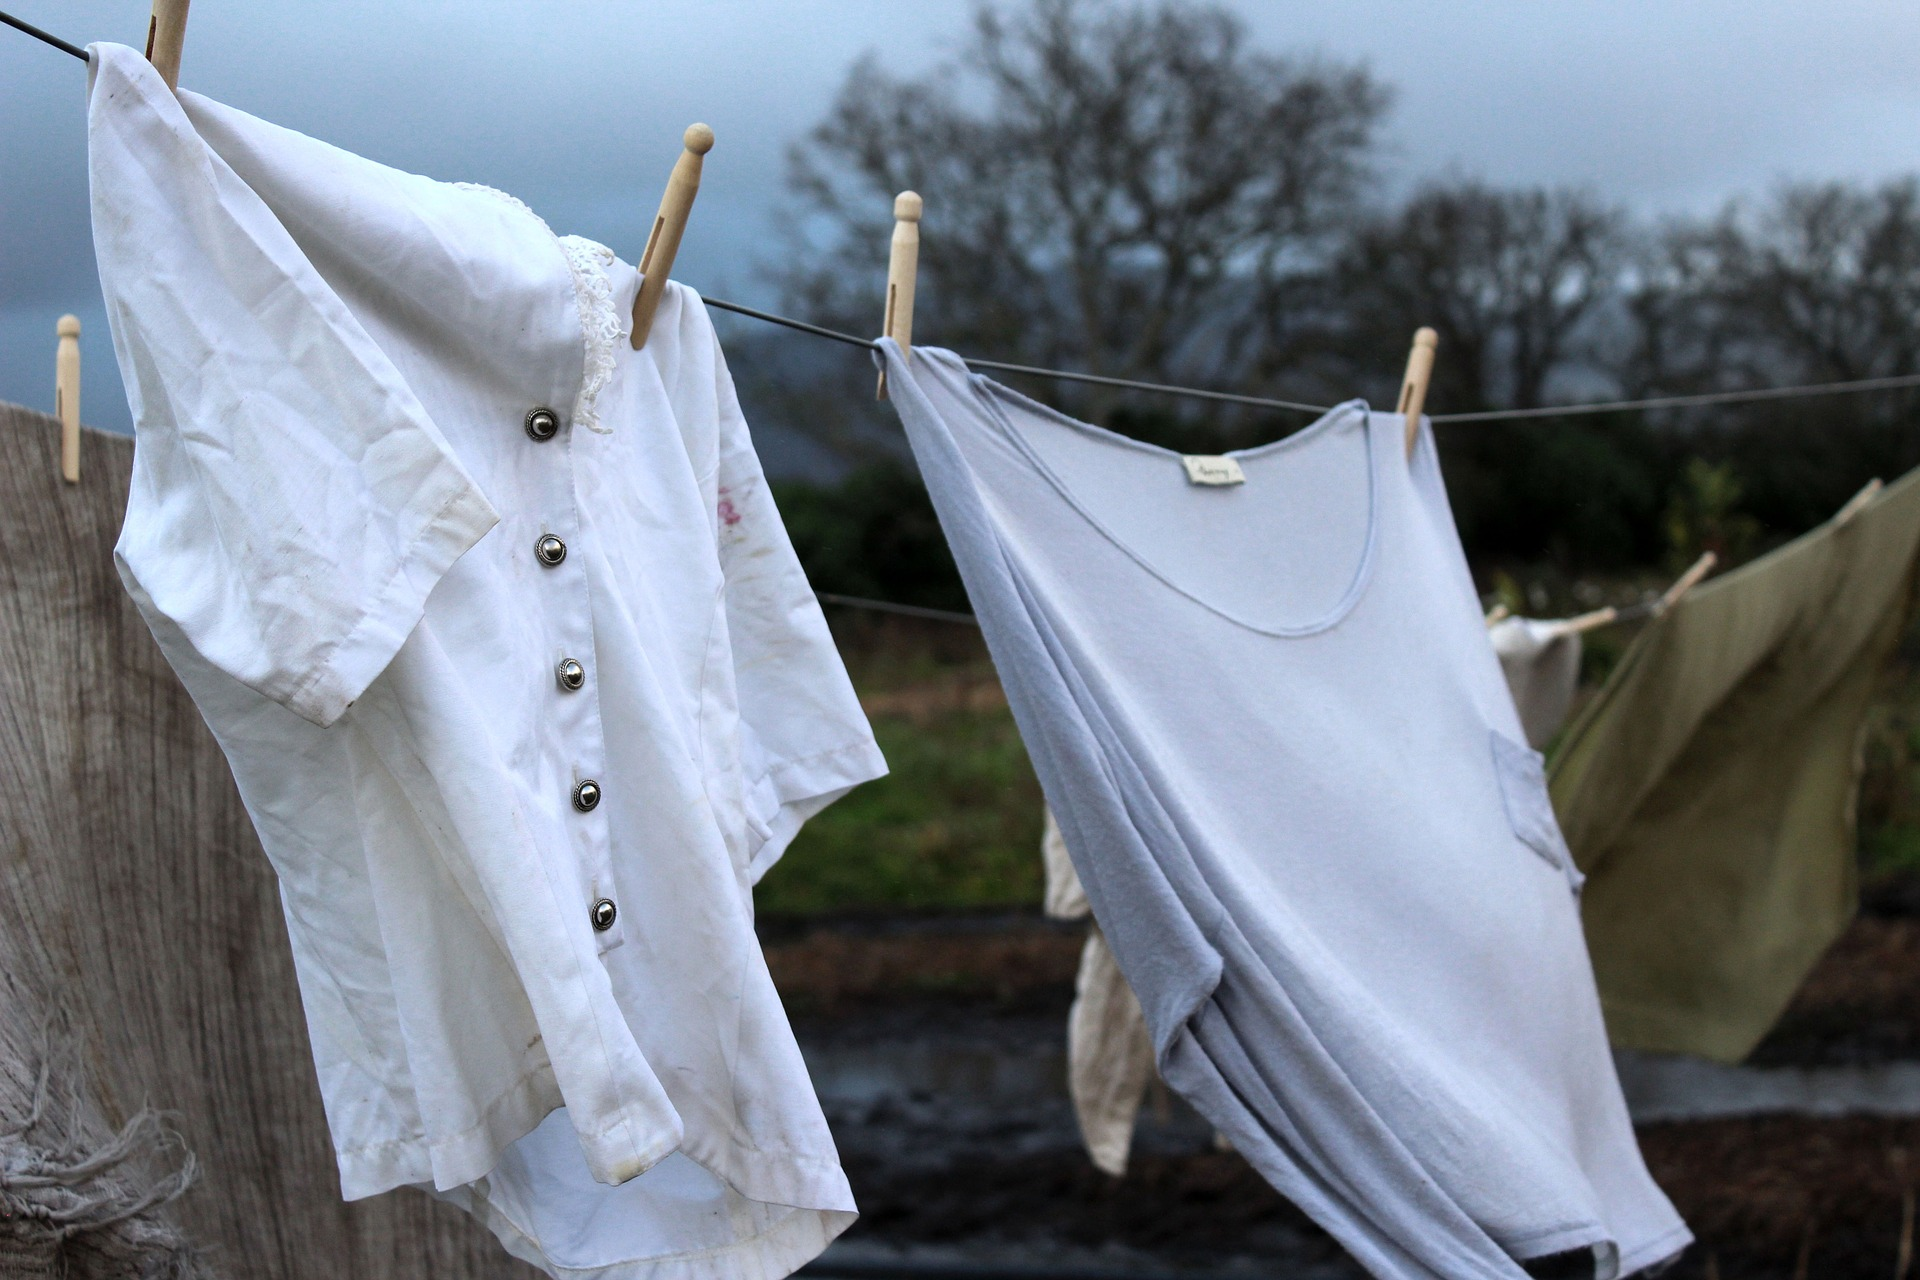 pegging out clothes hygge in spring